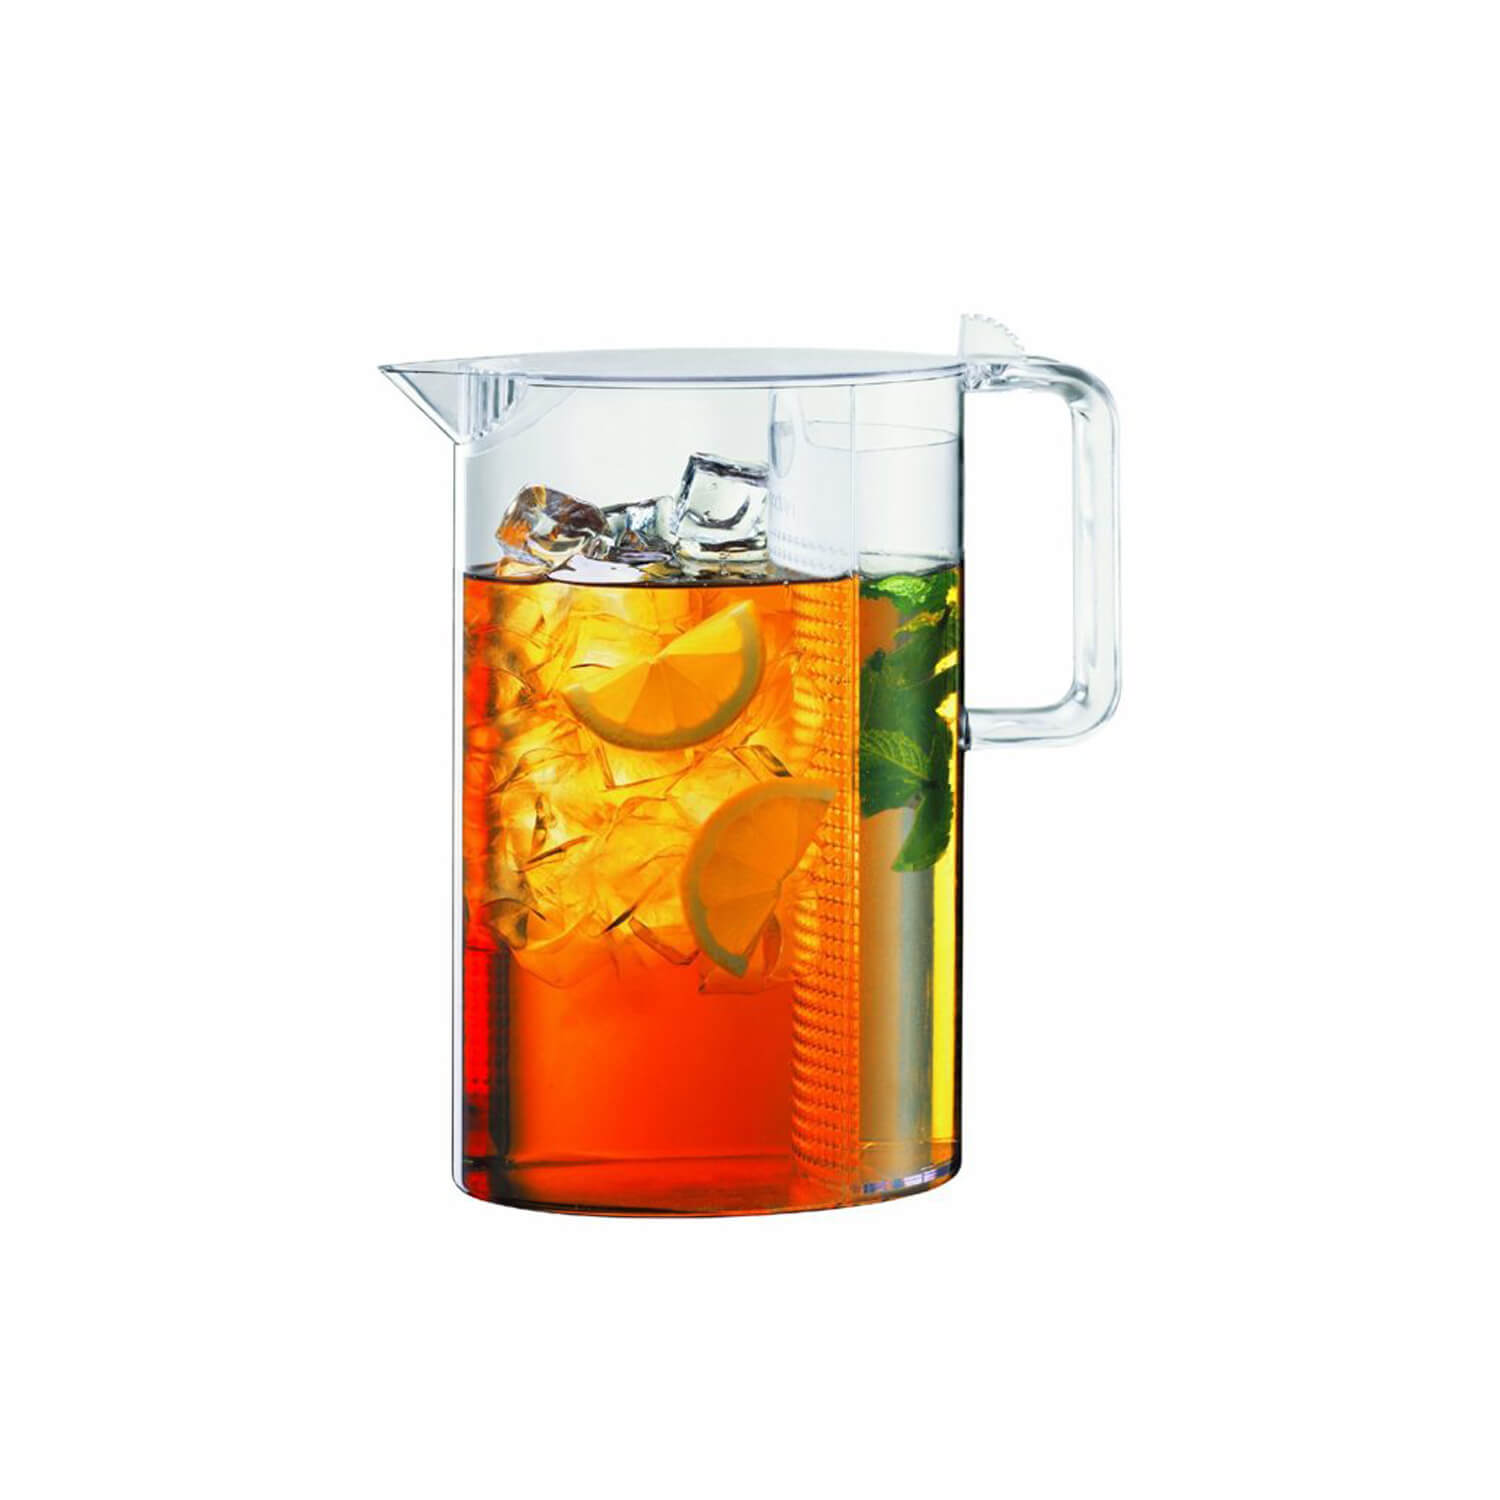 Bodum - Ceylon - Iced tea brewer - 1500 ml